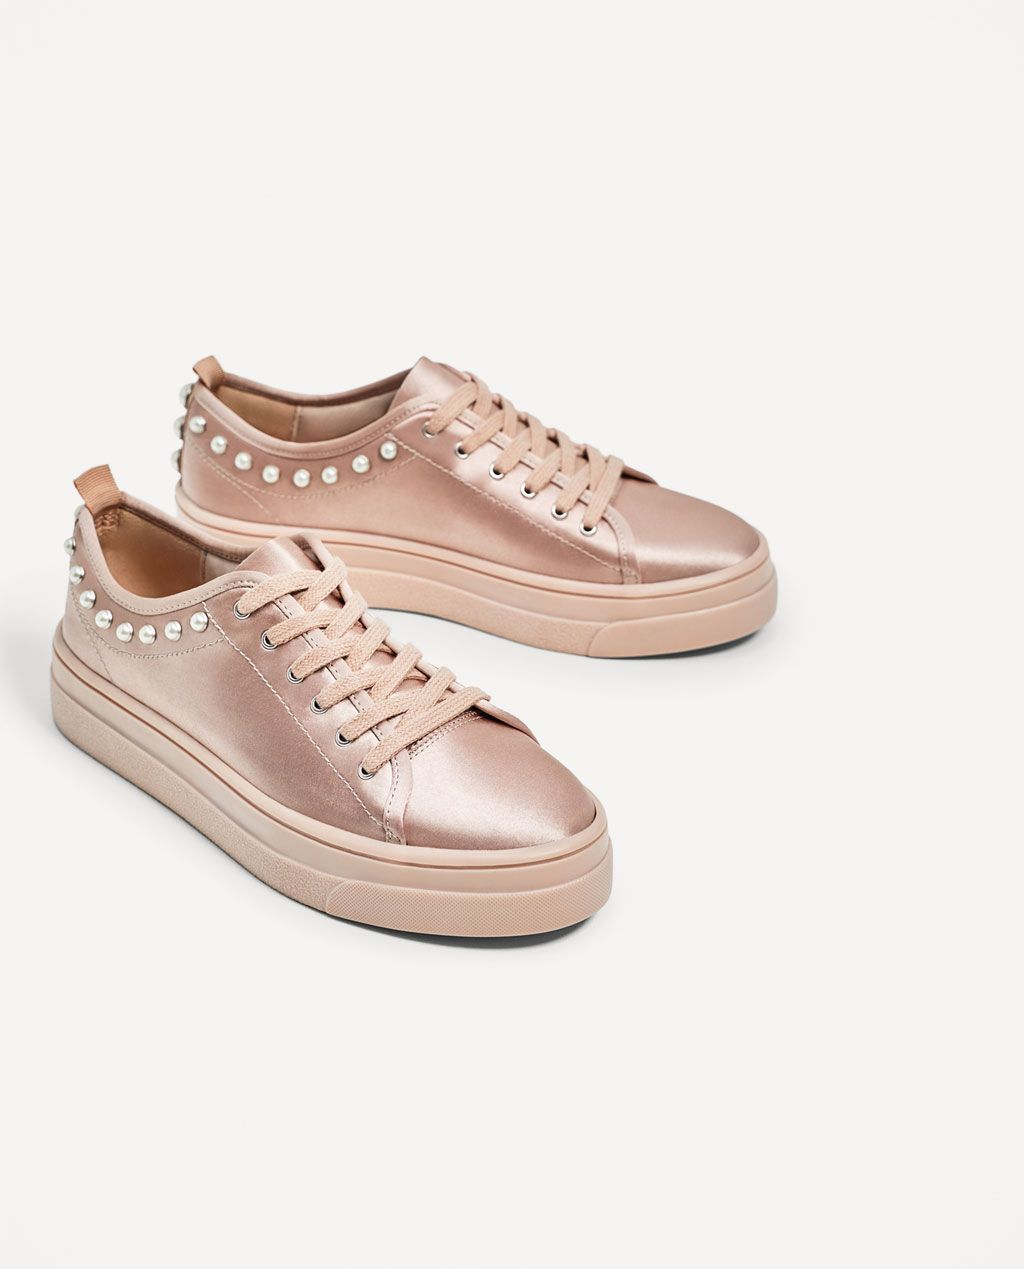 b57bc7c127e ZARA - WOMAN - SATIN SNEAKERS WITH PEARLS Zapatos Bonitos